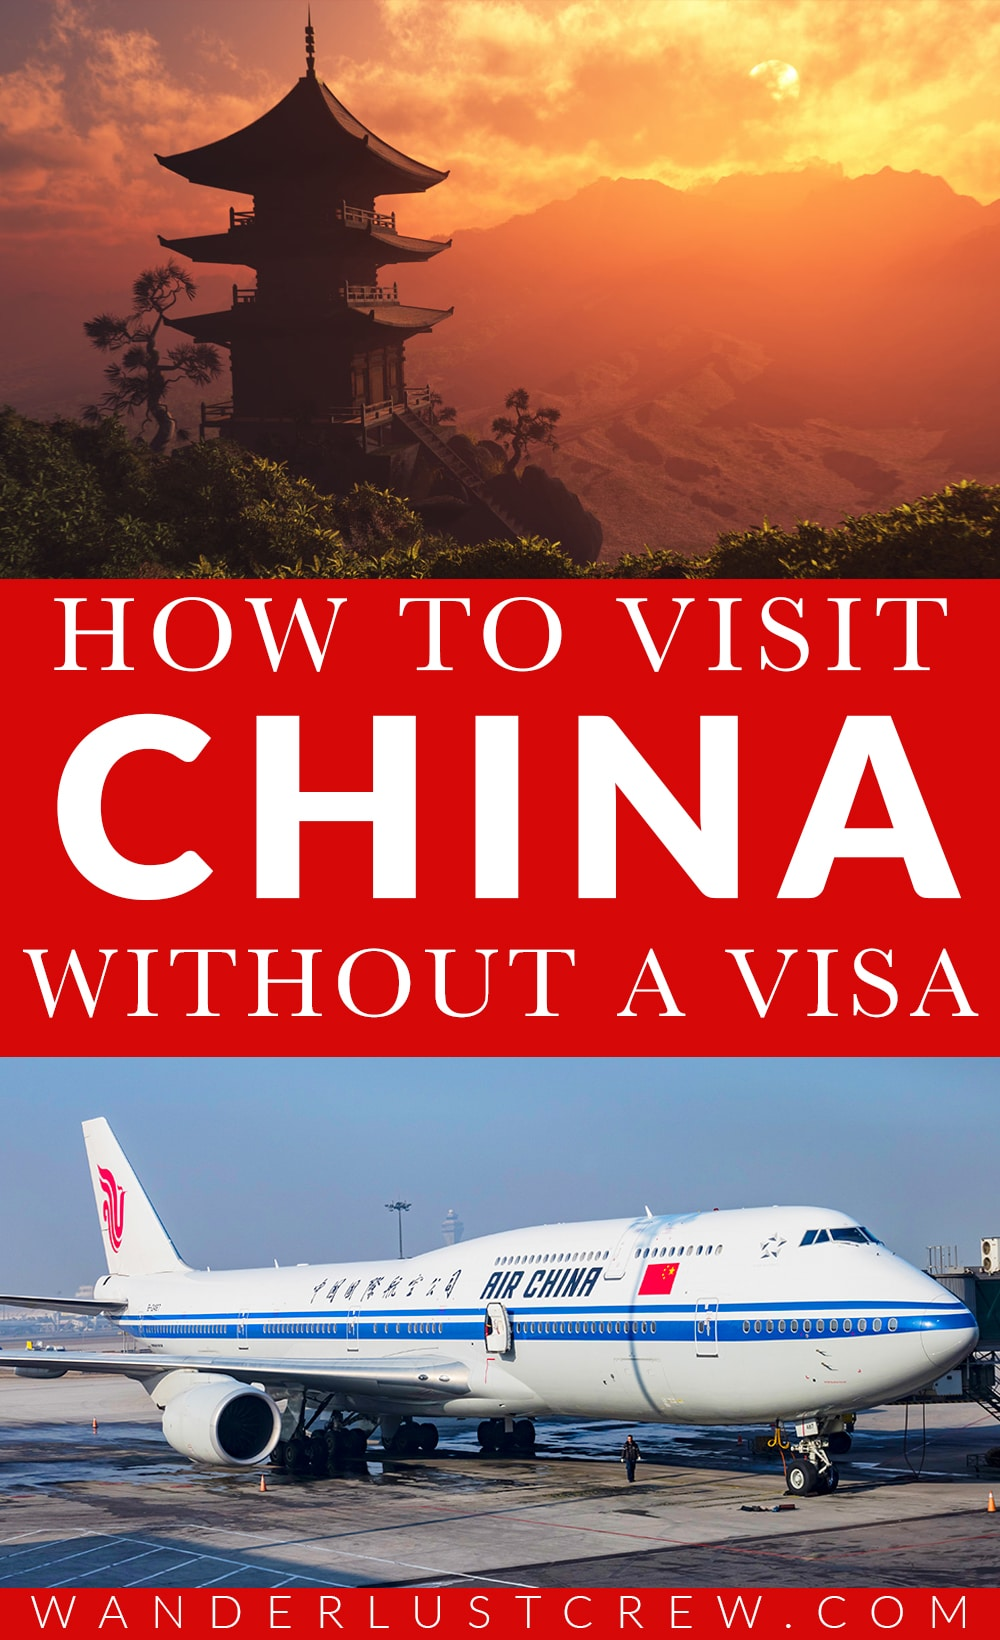 How to Visit China Without a Visa. Learn the ins and outs of how to visit China without needing a visa. Learn which cities are best to visit and what to do on your layover in China. #China #Layover #Visa